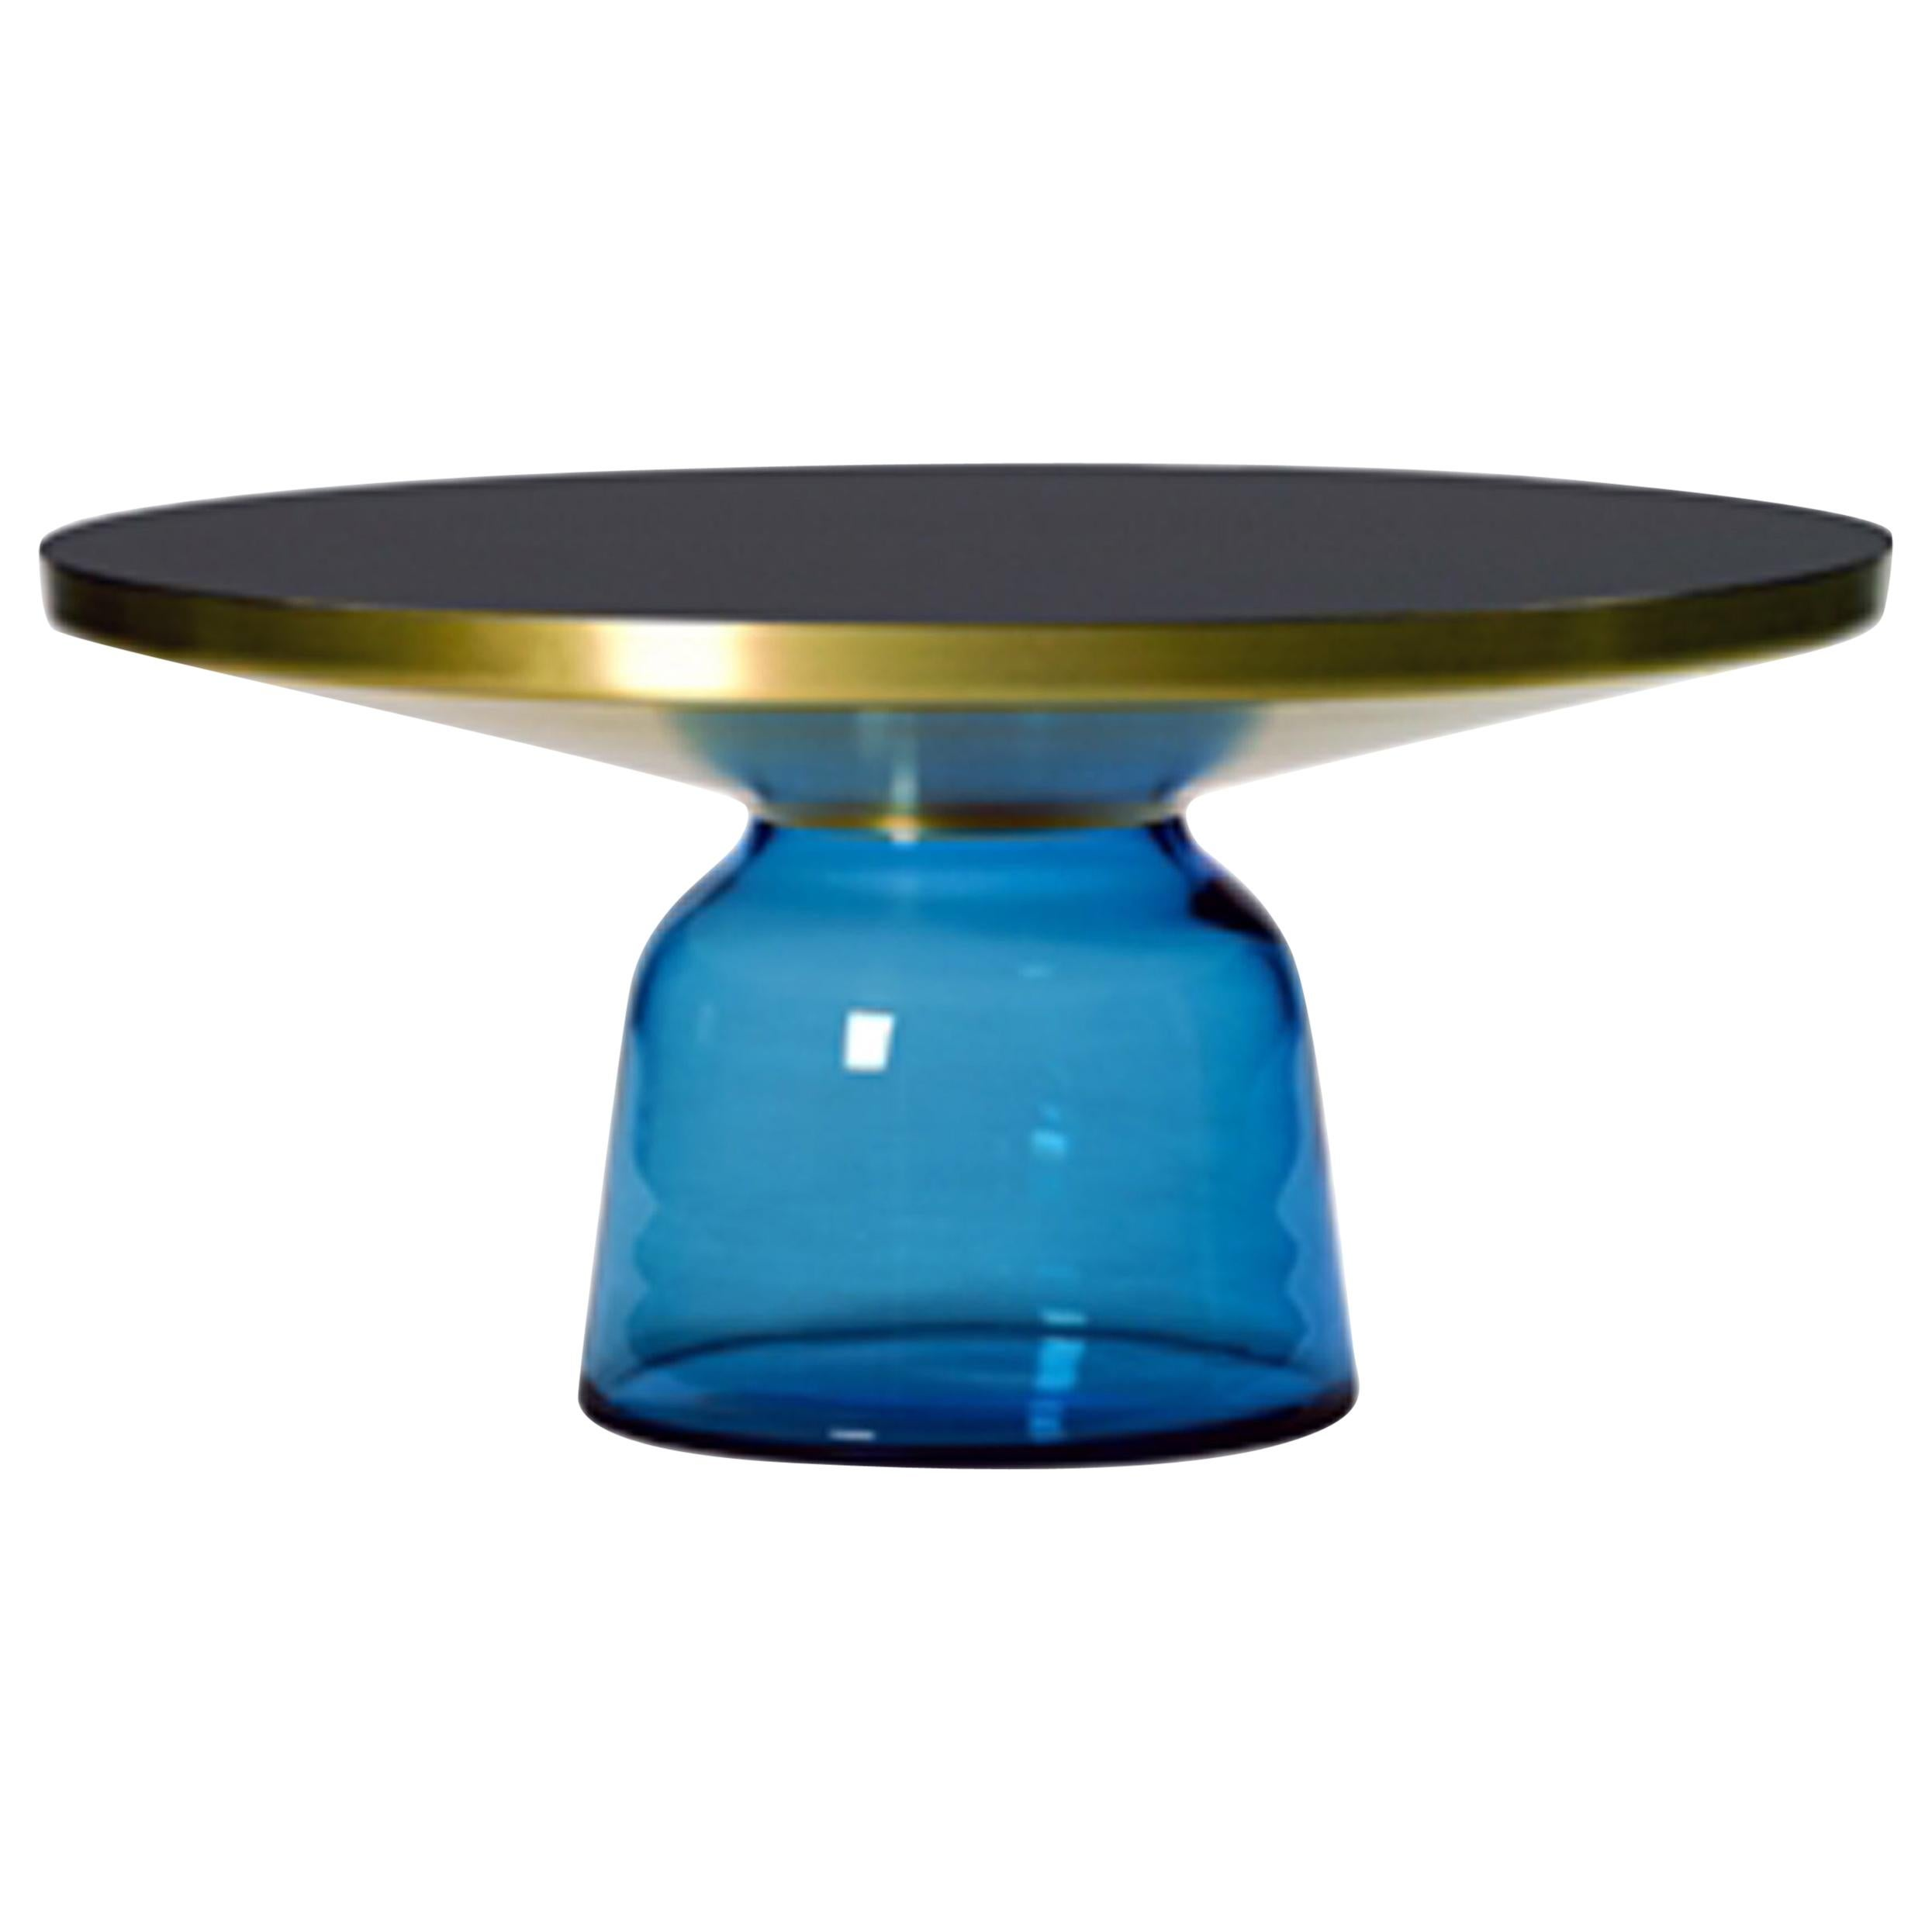 ClassiCon Bell Coffee Table in Brass and Sapphire Blue by Sebastian Herkner